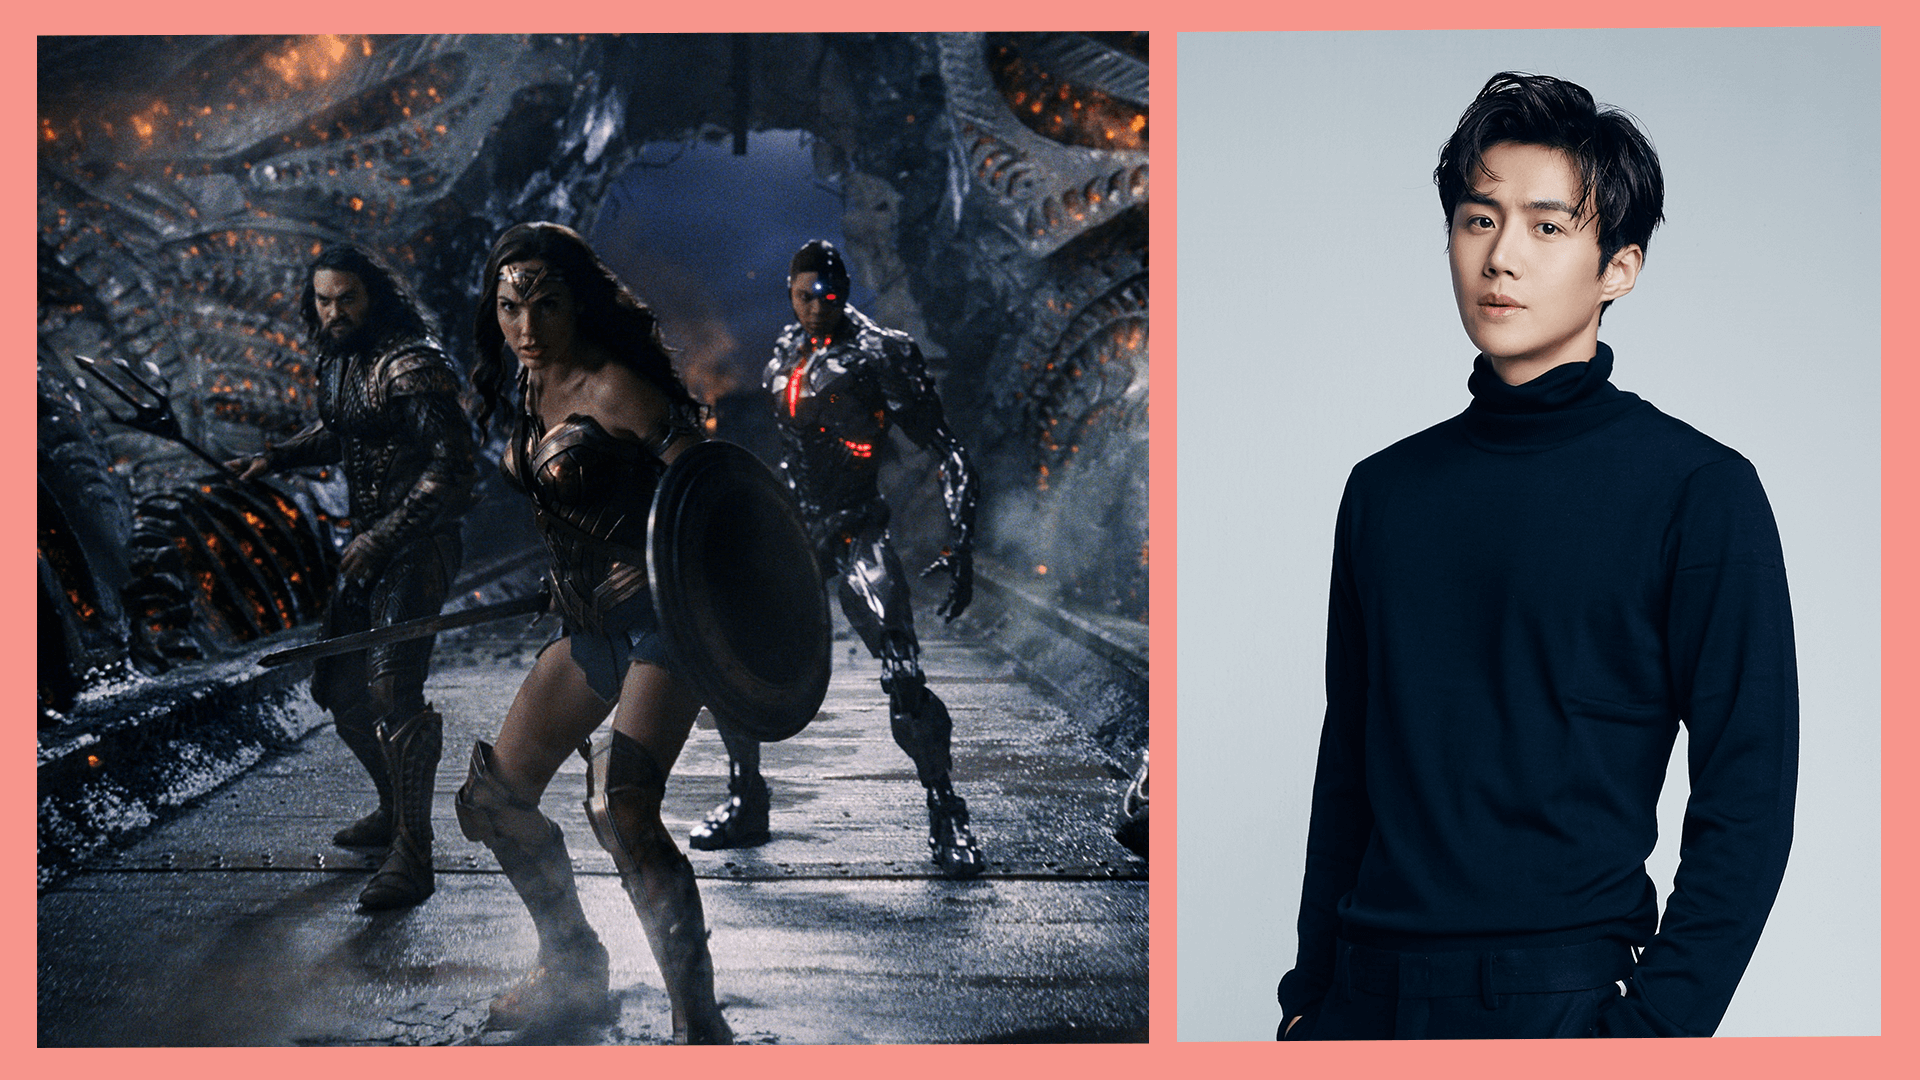 Trending News Roundup: Zack Snyder's 'Justice League,' Kim Seon Ho Fan Meeting, 'Falcon and the Winter Soldier'